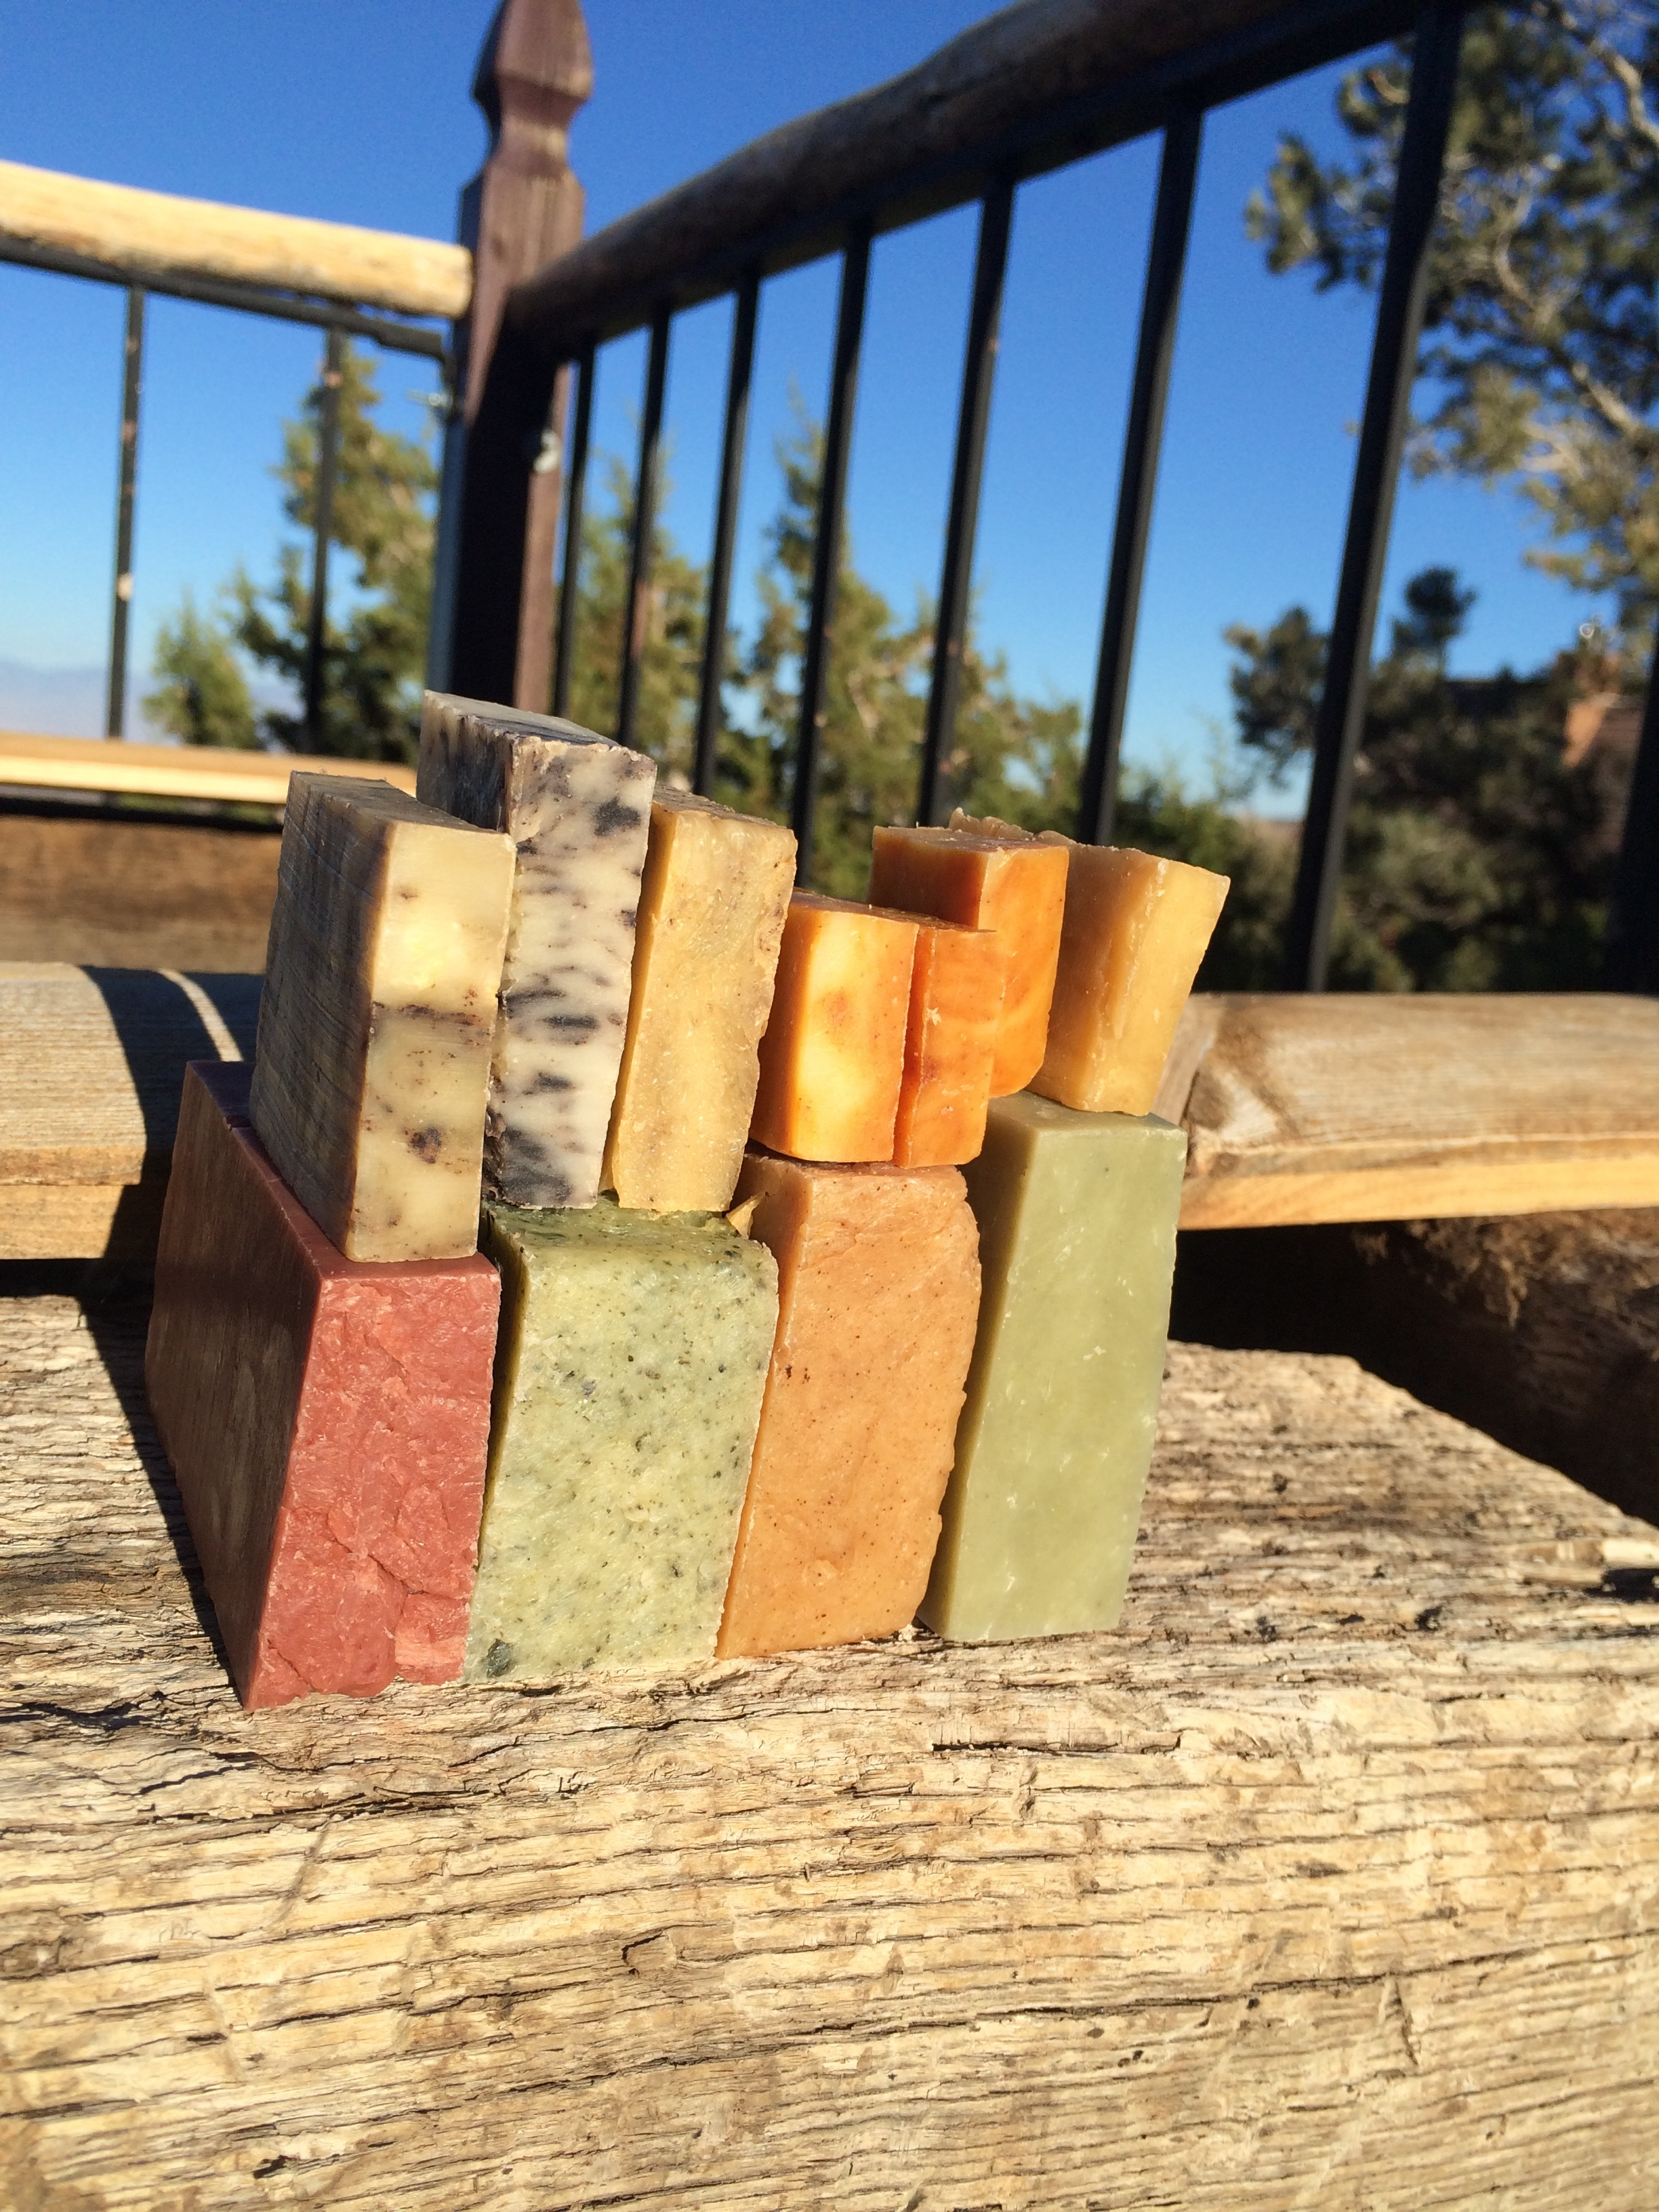 A variety of hot process truly natural soaps!